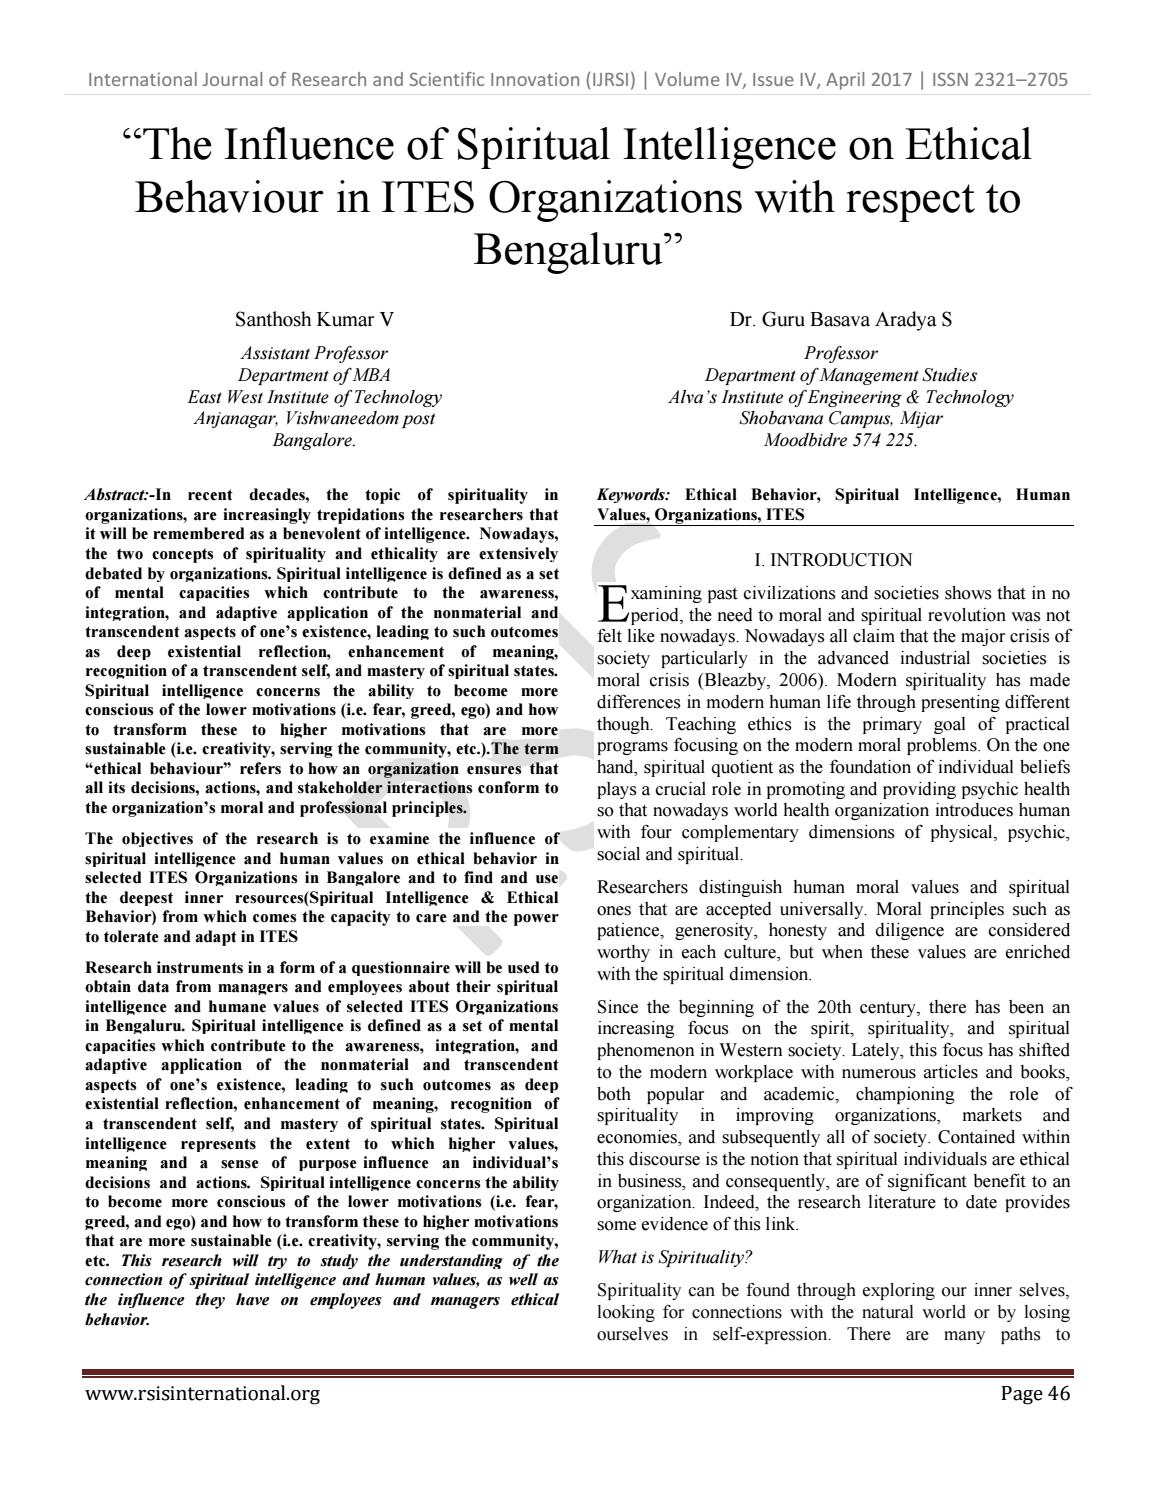 research papers unethical behavior workplace Read this essay on unethical behavior in a workplace the reason publishing medical information without the complete research is unethical is because it can cause great damage to the consumer reading the report.